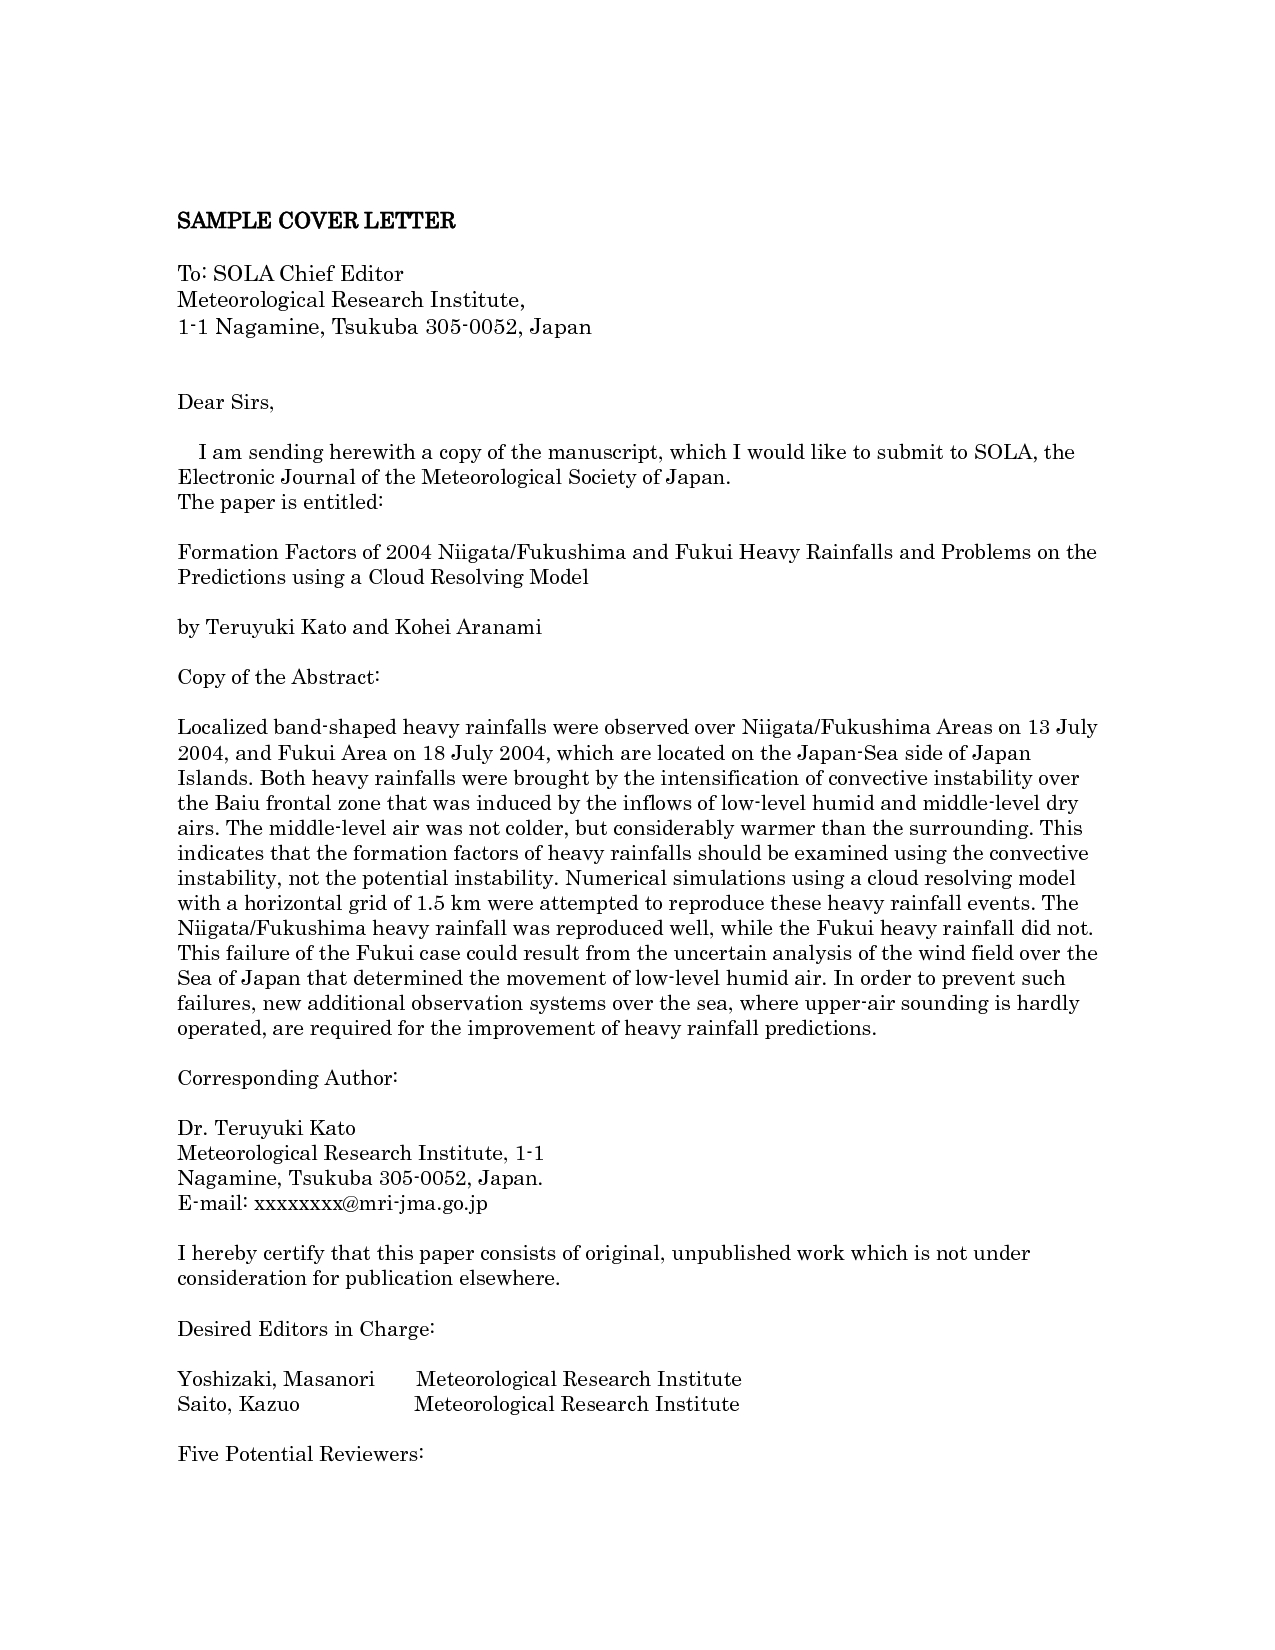 014 Research Paper Editor Cover Letter Breathtaking Free Editing Software On Text Full